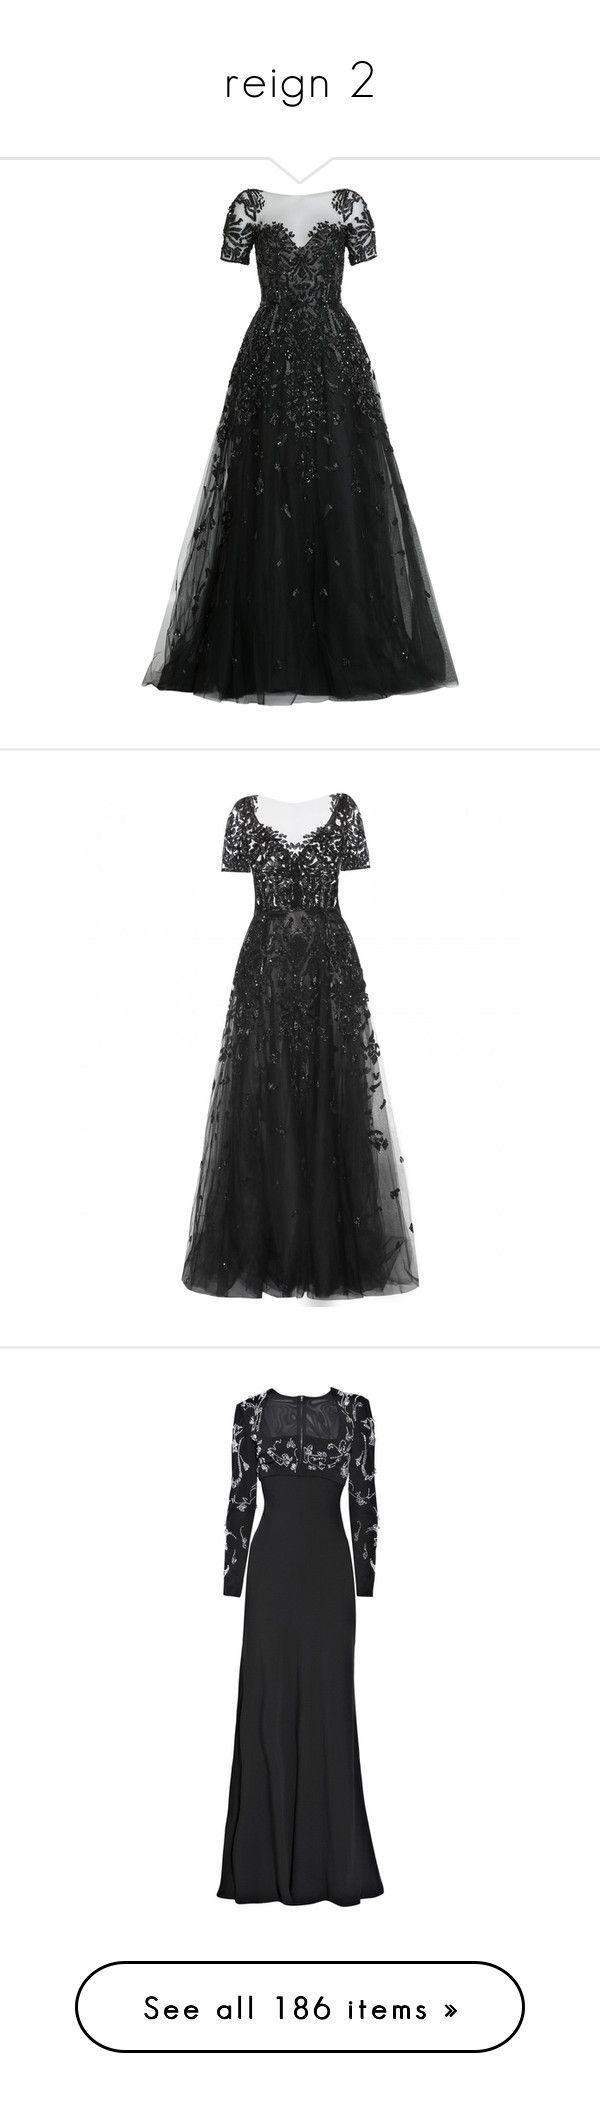 """""""reign 2"""" by rebellious-ingenue ❤ liked on Polyvore featuring dresses, gowns, long dresses, vestidos, black, beaded evening gowns, long beaded dress, long sparkly dress, sheer dress and long dress"""